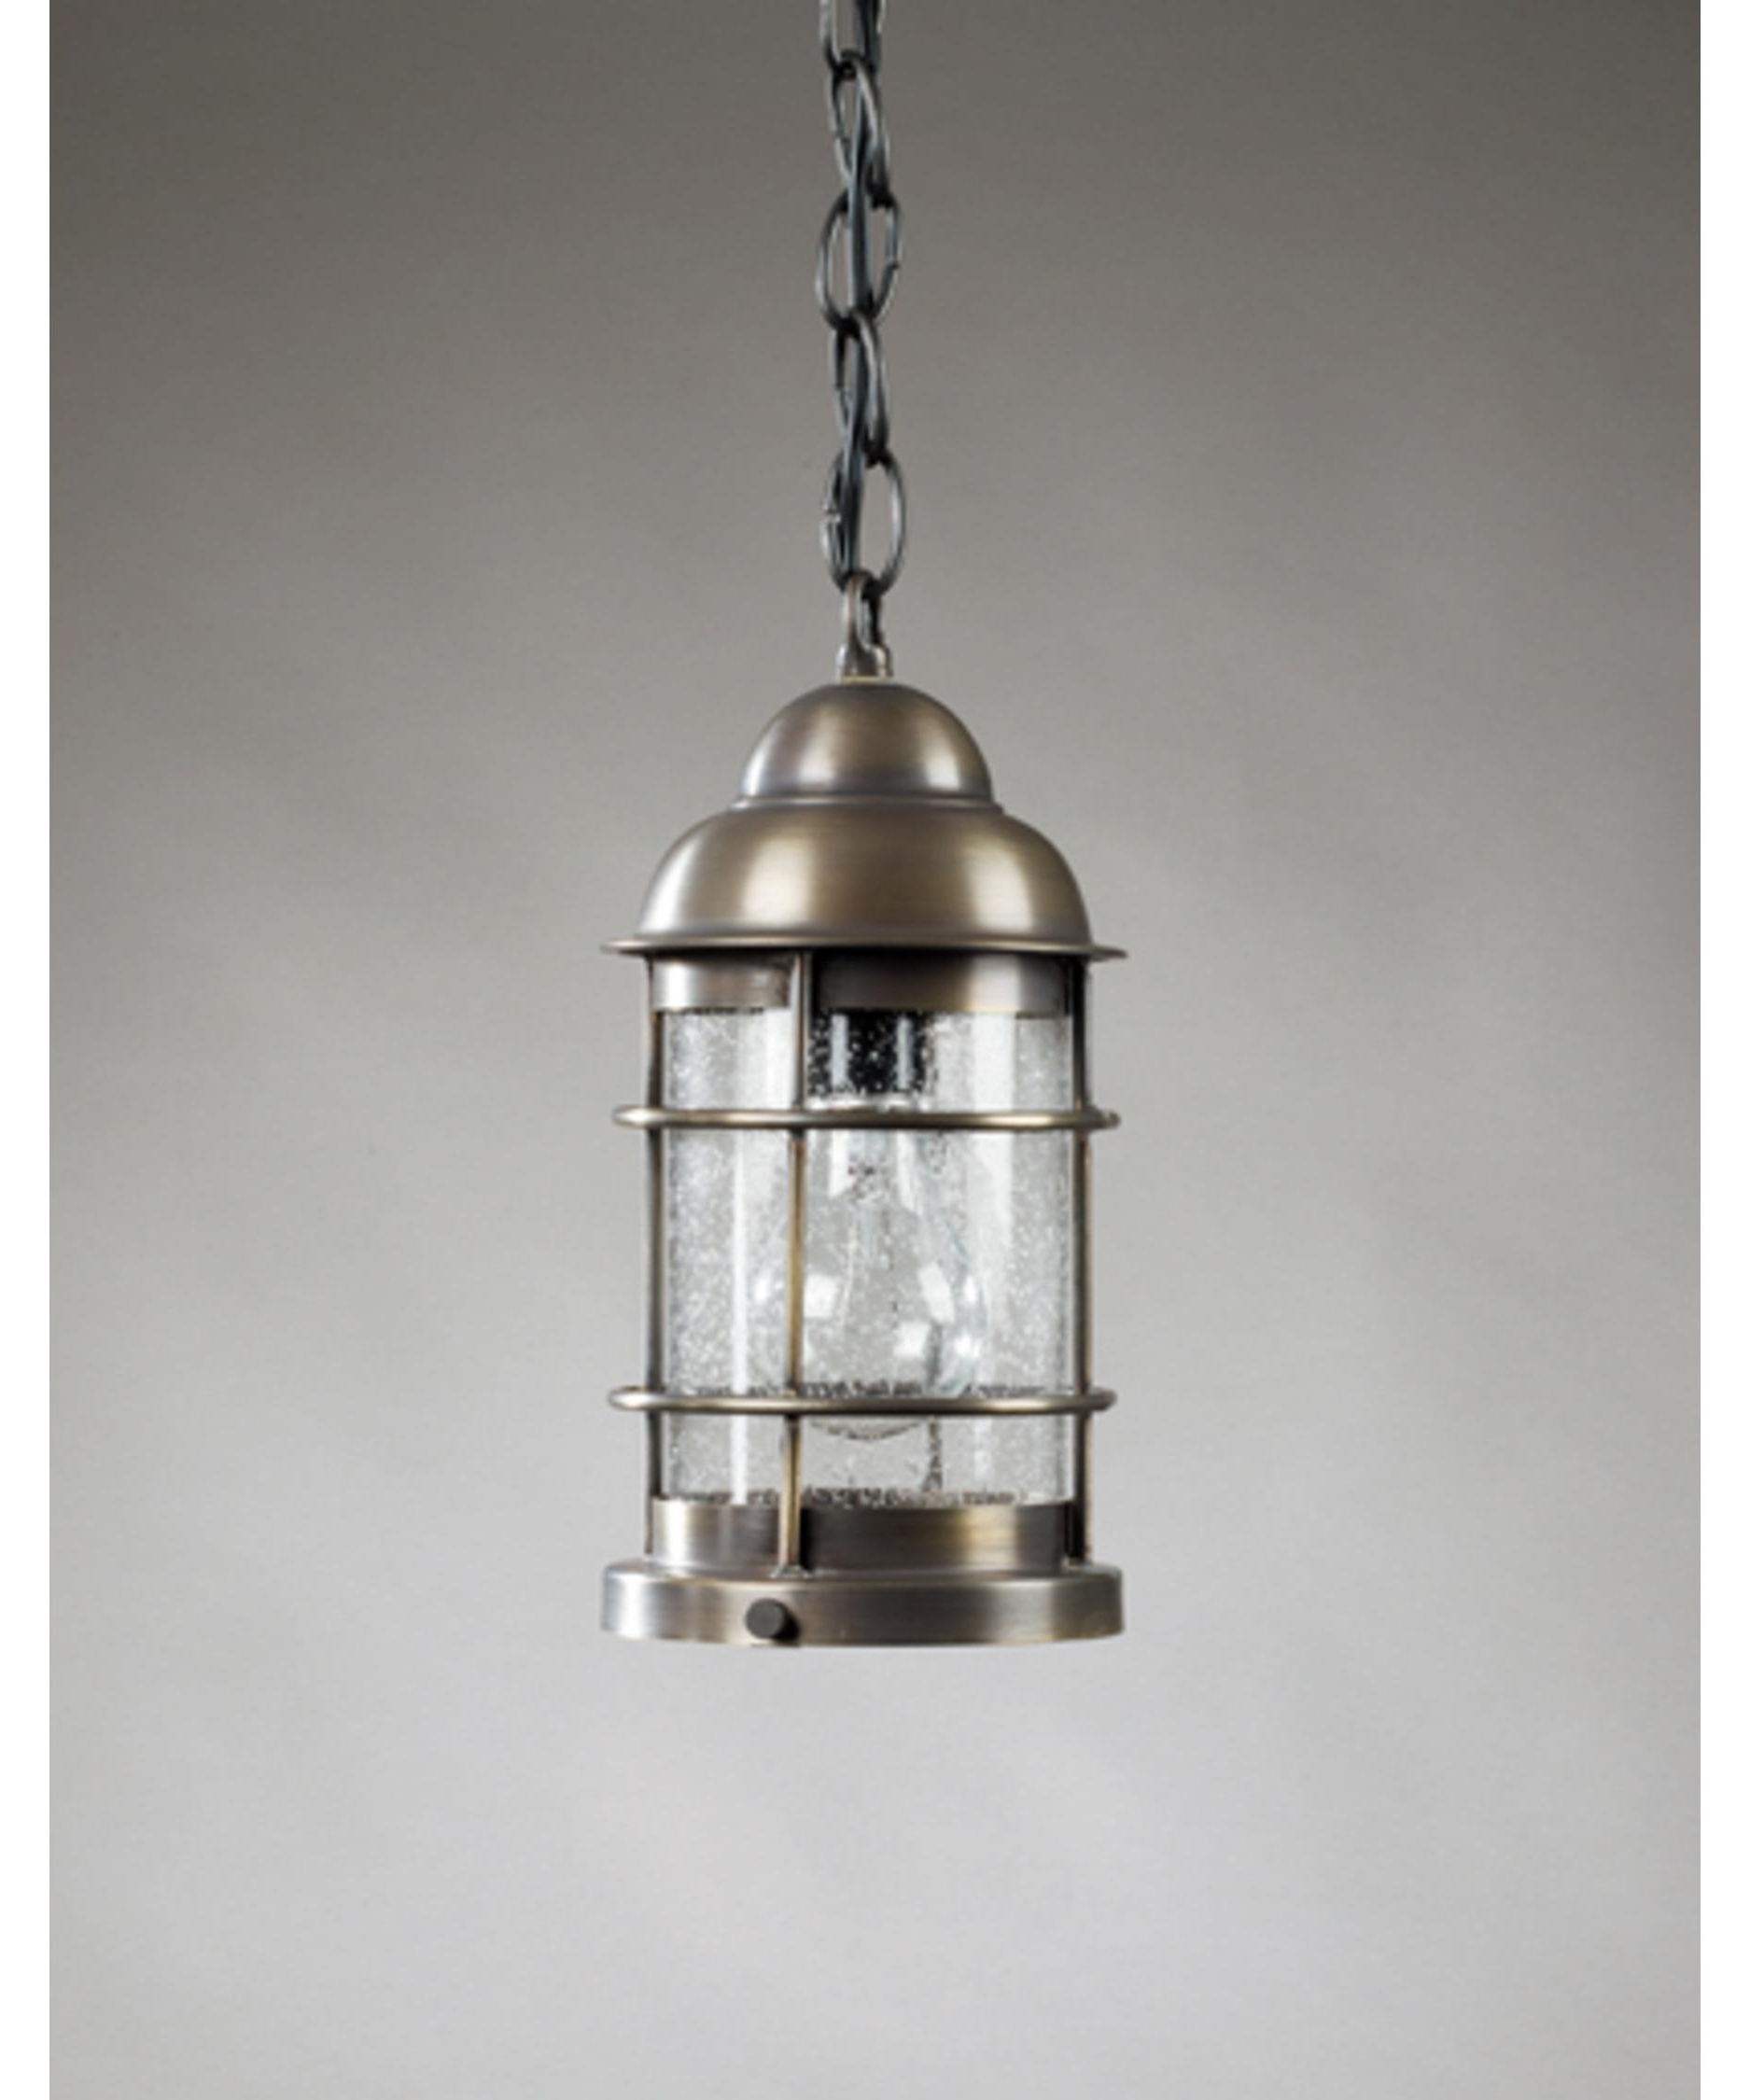 2018 Traditional Outdoor Hanging Lights Intended For Northeast Lantern 3512 Med Nautical 6 Inch Wide 1 Light Outdoor (View 11 of 20)